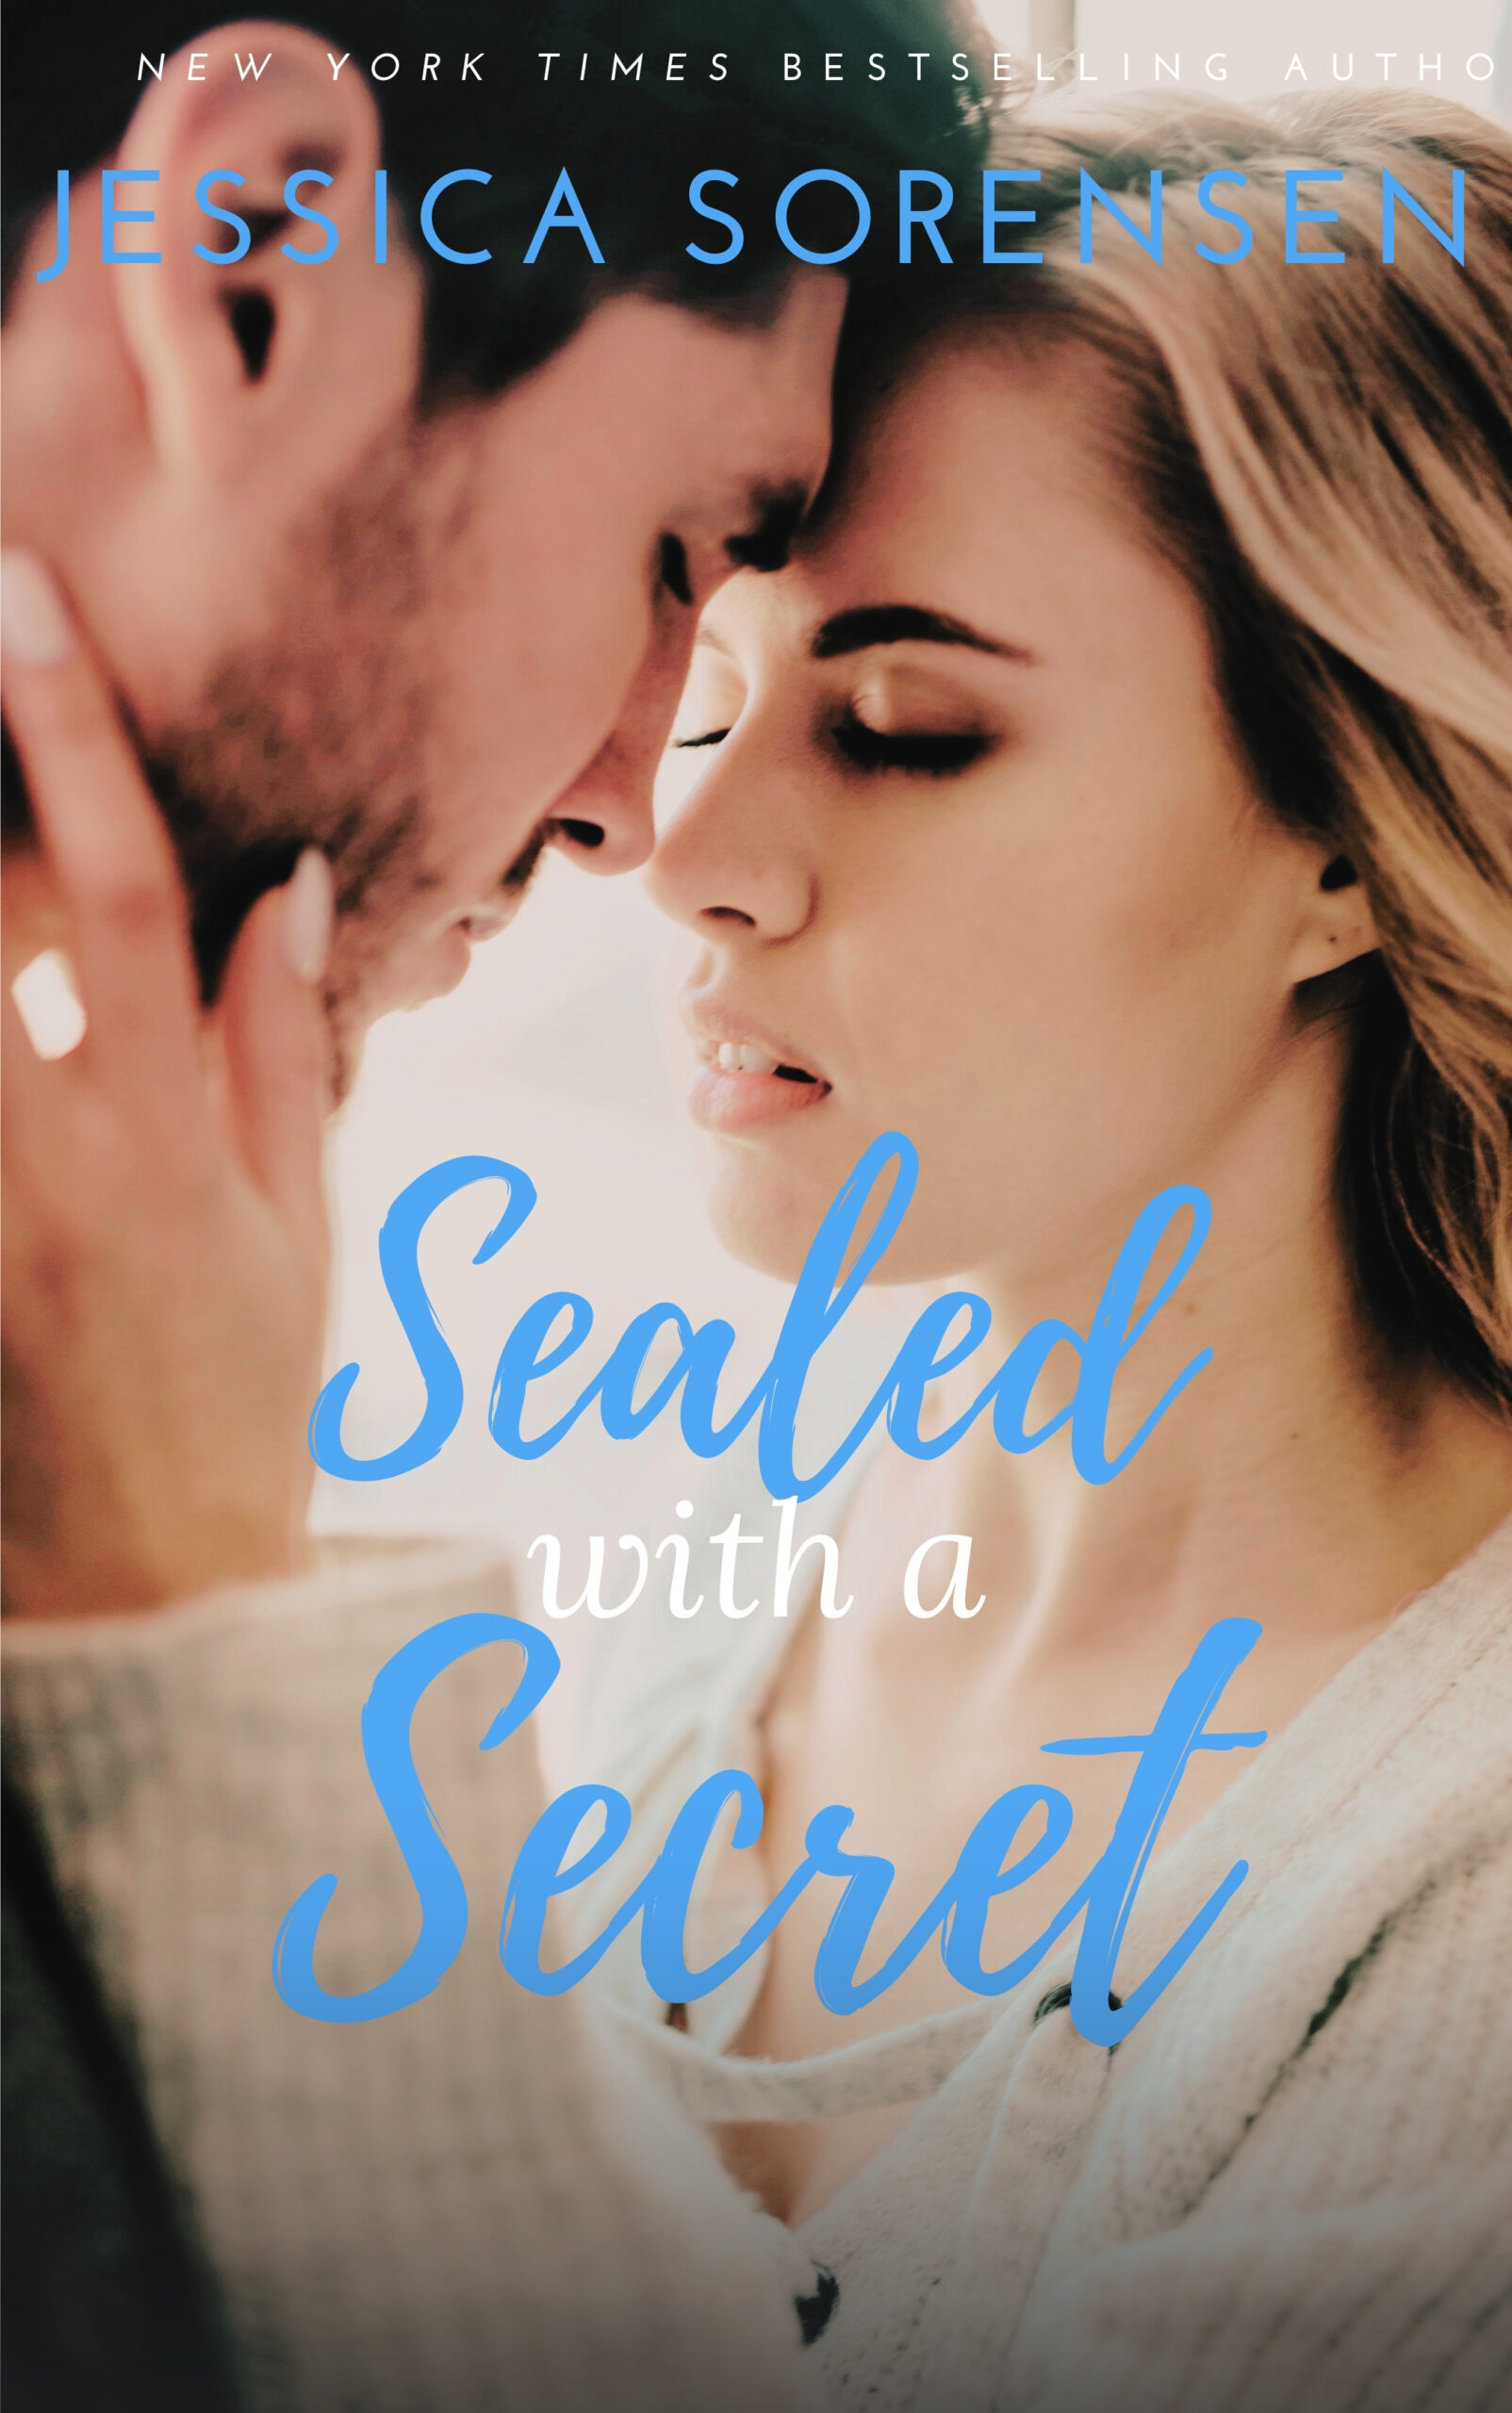 sealed with a secret